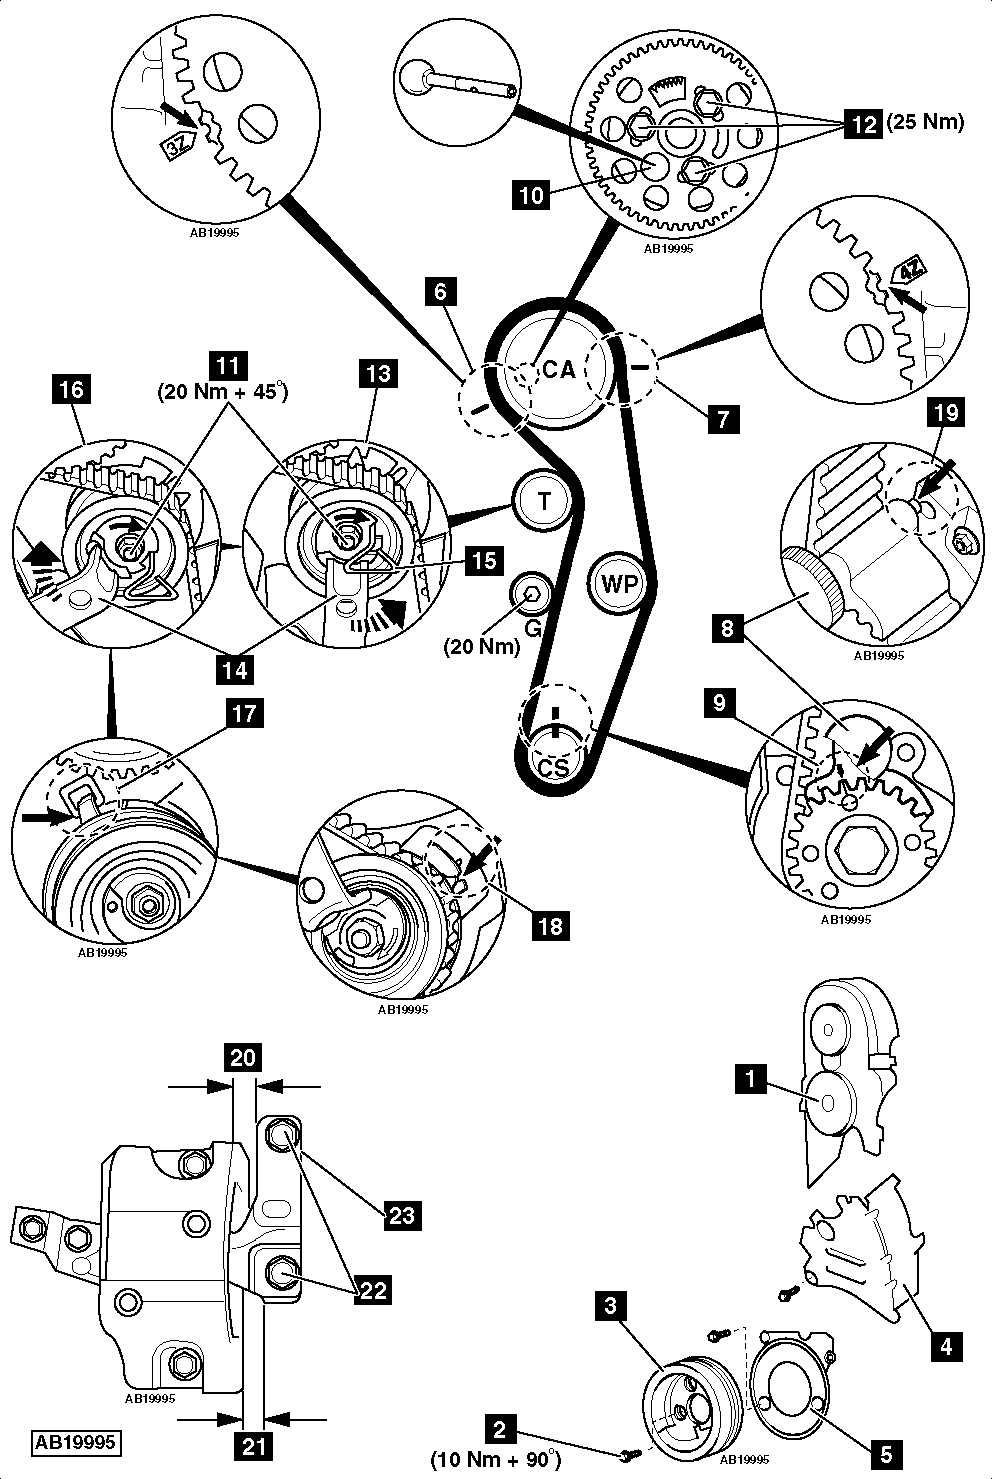 5b8tn 2000 Vw Jetta Diagram The Car Leaking Anti Freeze Yet I Hoses also Engine Coolant Outlet additionally Index in addition Ford Pats Wiring Diagrams besides Showthread. on 2002 vw jetta car